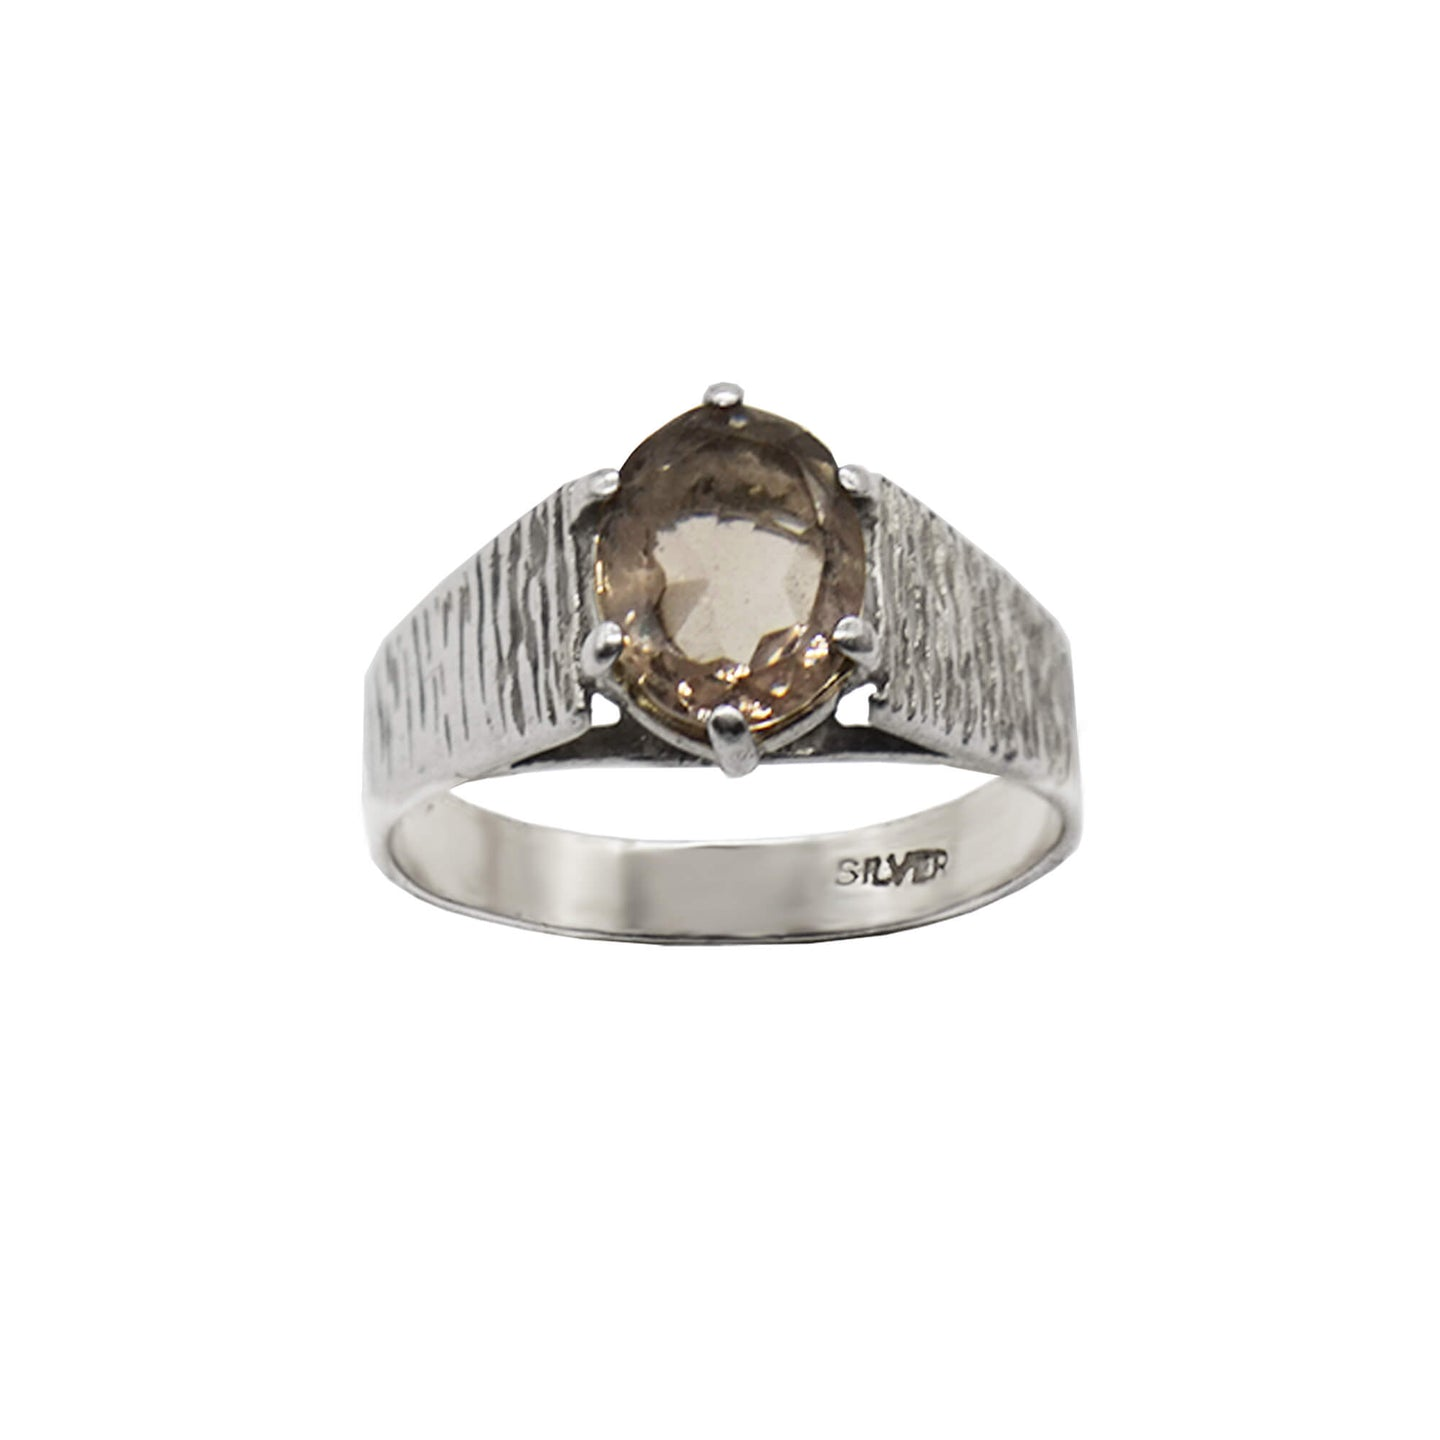 Close up Vintage Sterling Silver Smoky Quartz Oval Stone Ring with ridged band, hallmarked Silver, white background.